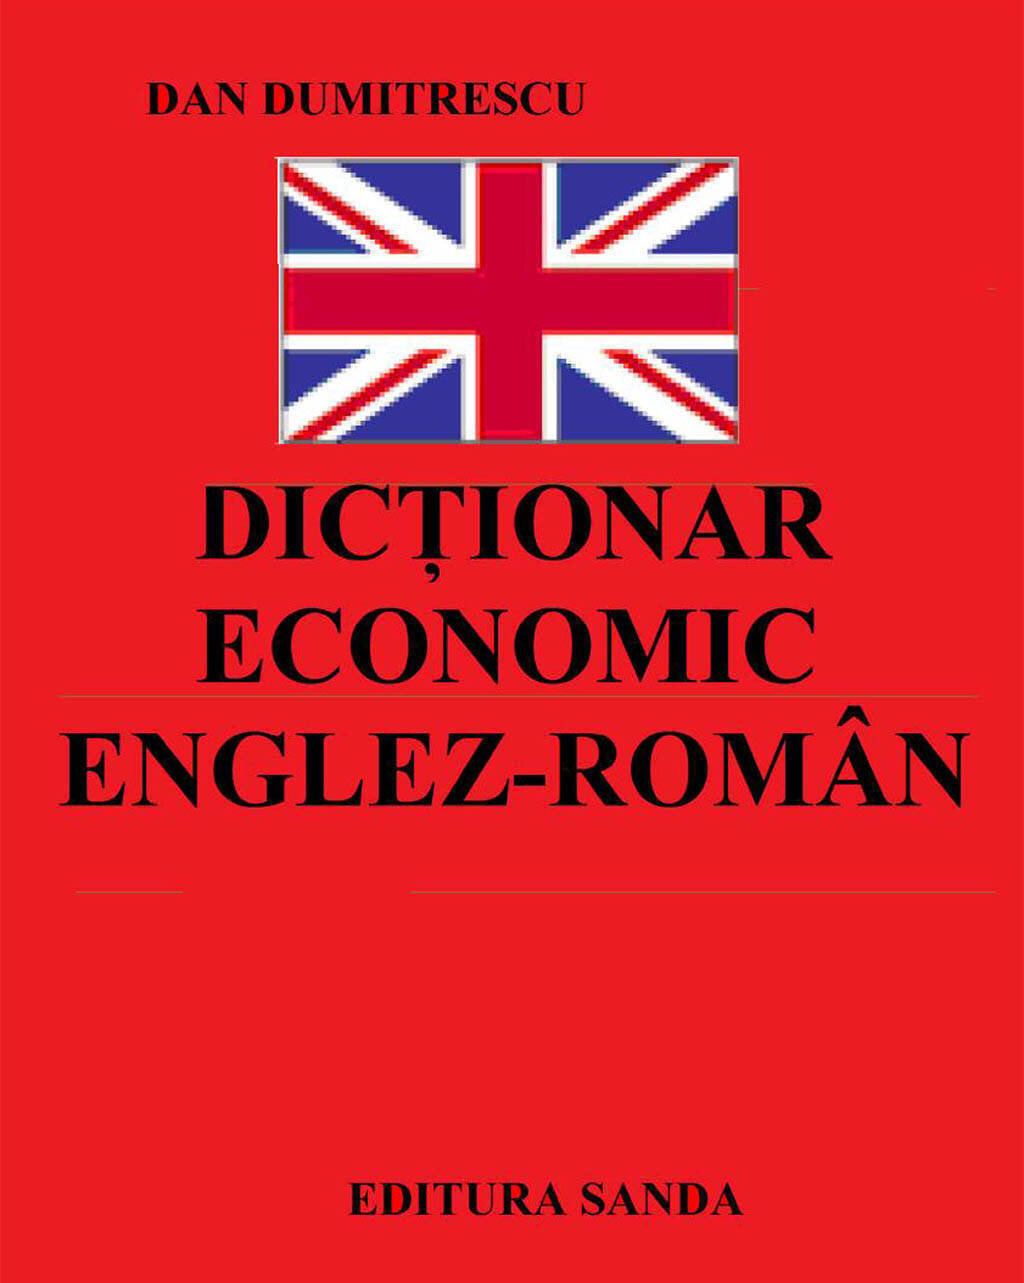 Dictionar economic Englez-Roman (eBook)